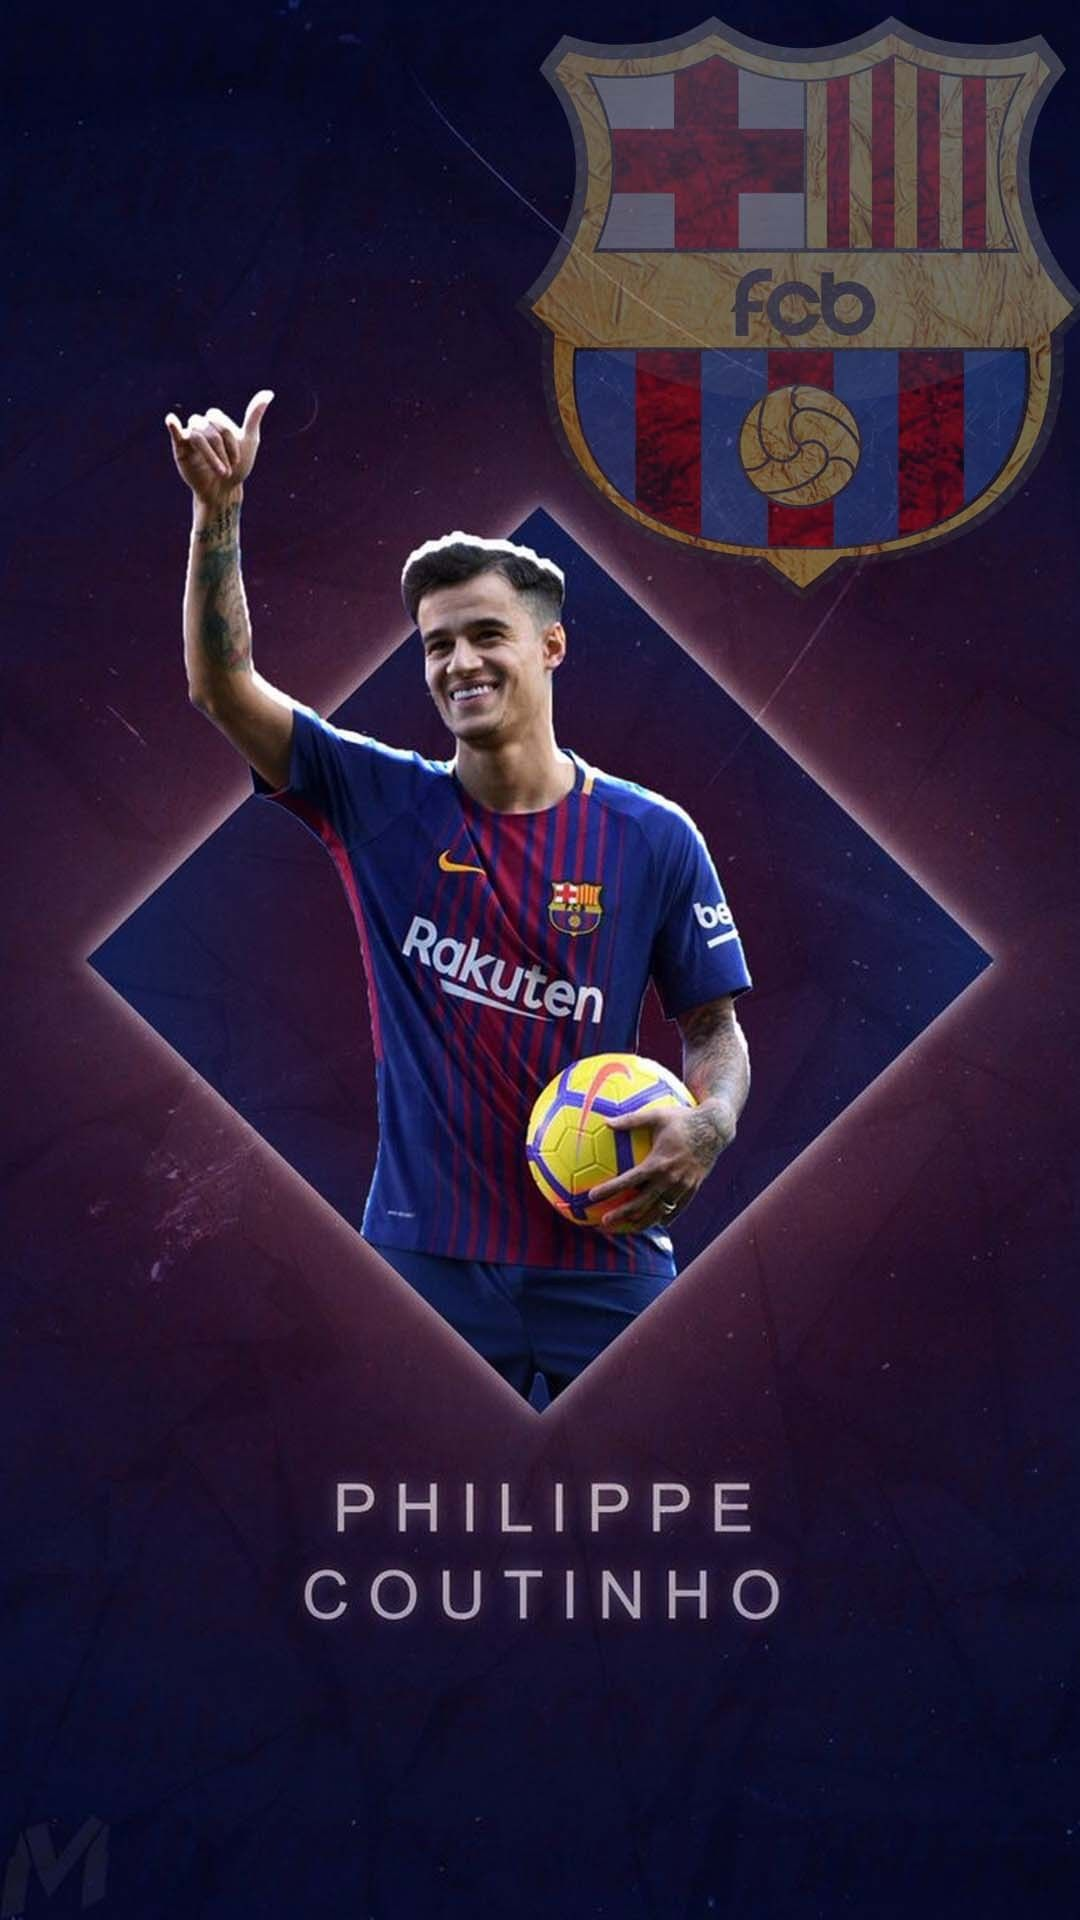 Phonewallpaper Coutinho Barcelona Wallpaper For Android Check More